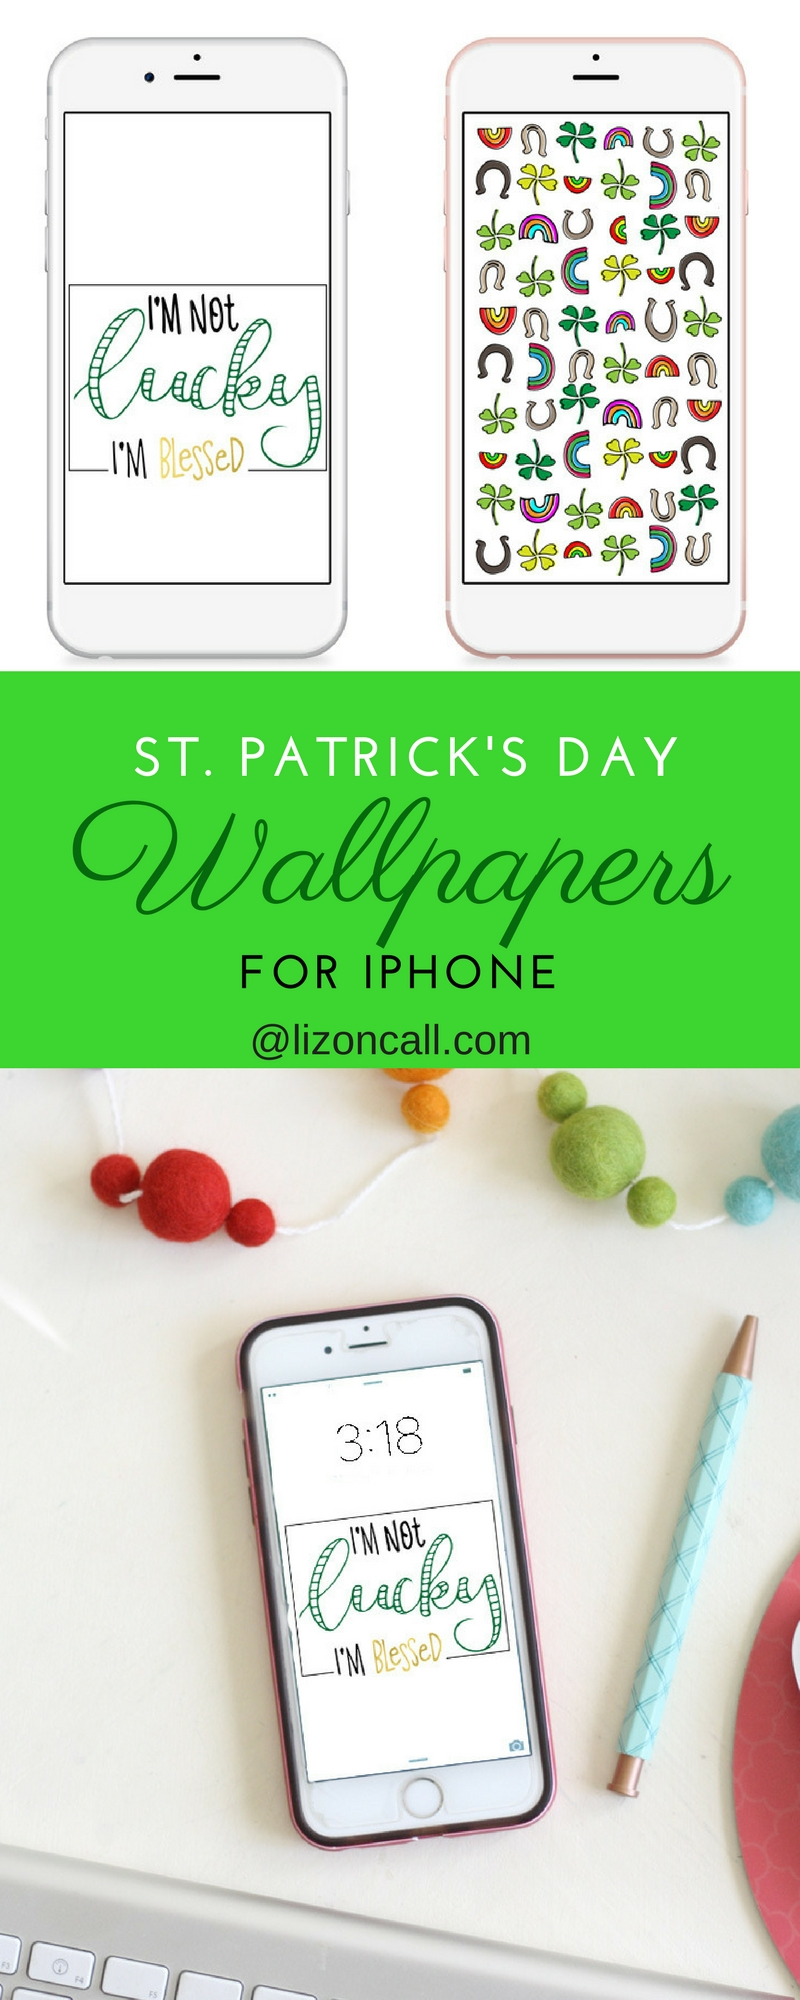 Make sure you have your green on this St. Patrick's Day with one of these free iPhone wallpaper designs.